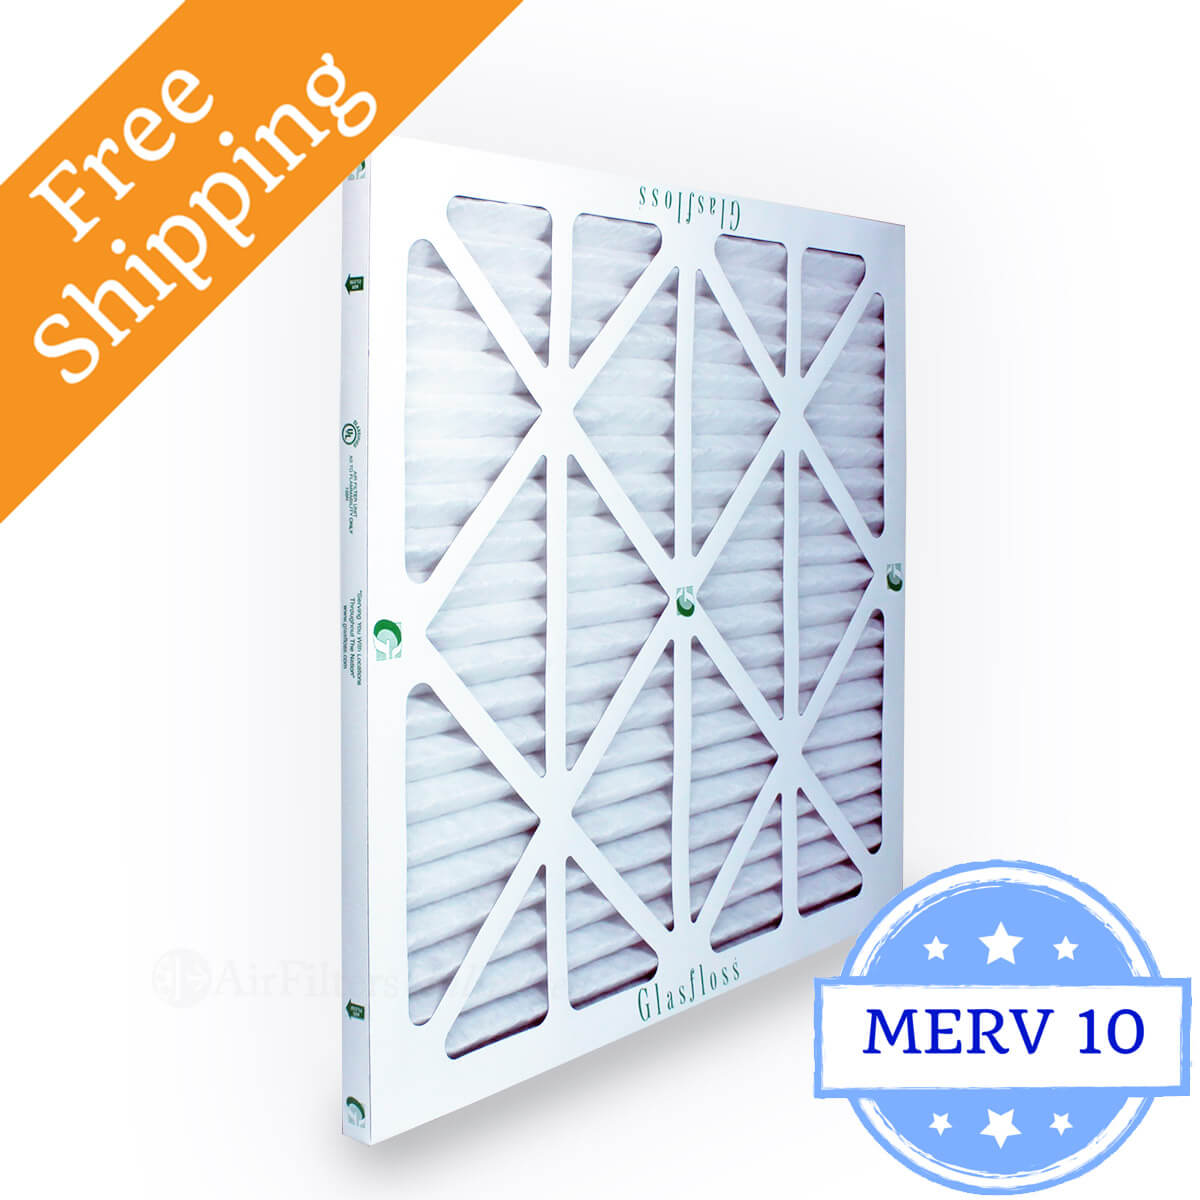 Glasfloss 20x20x1 Air Filter ZL Series